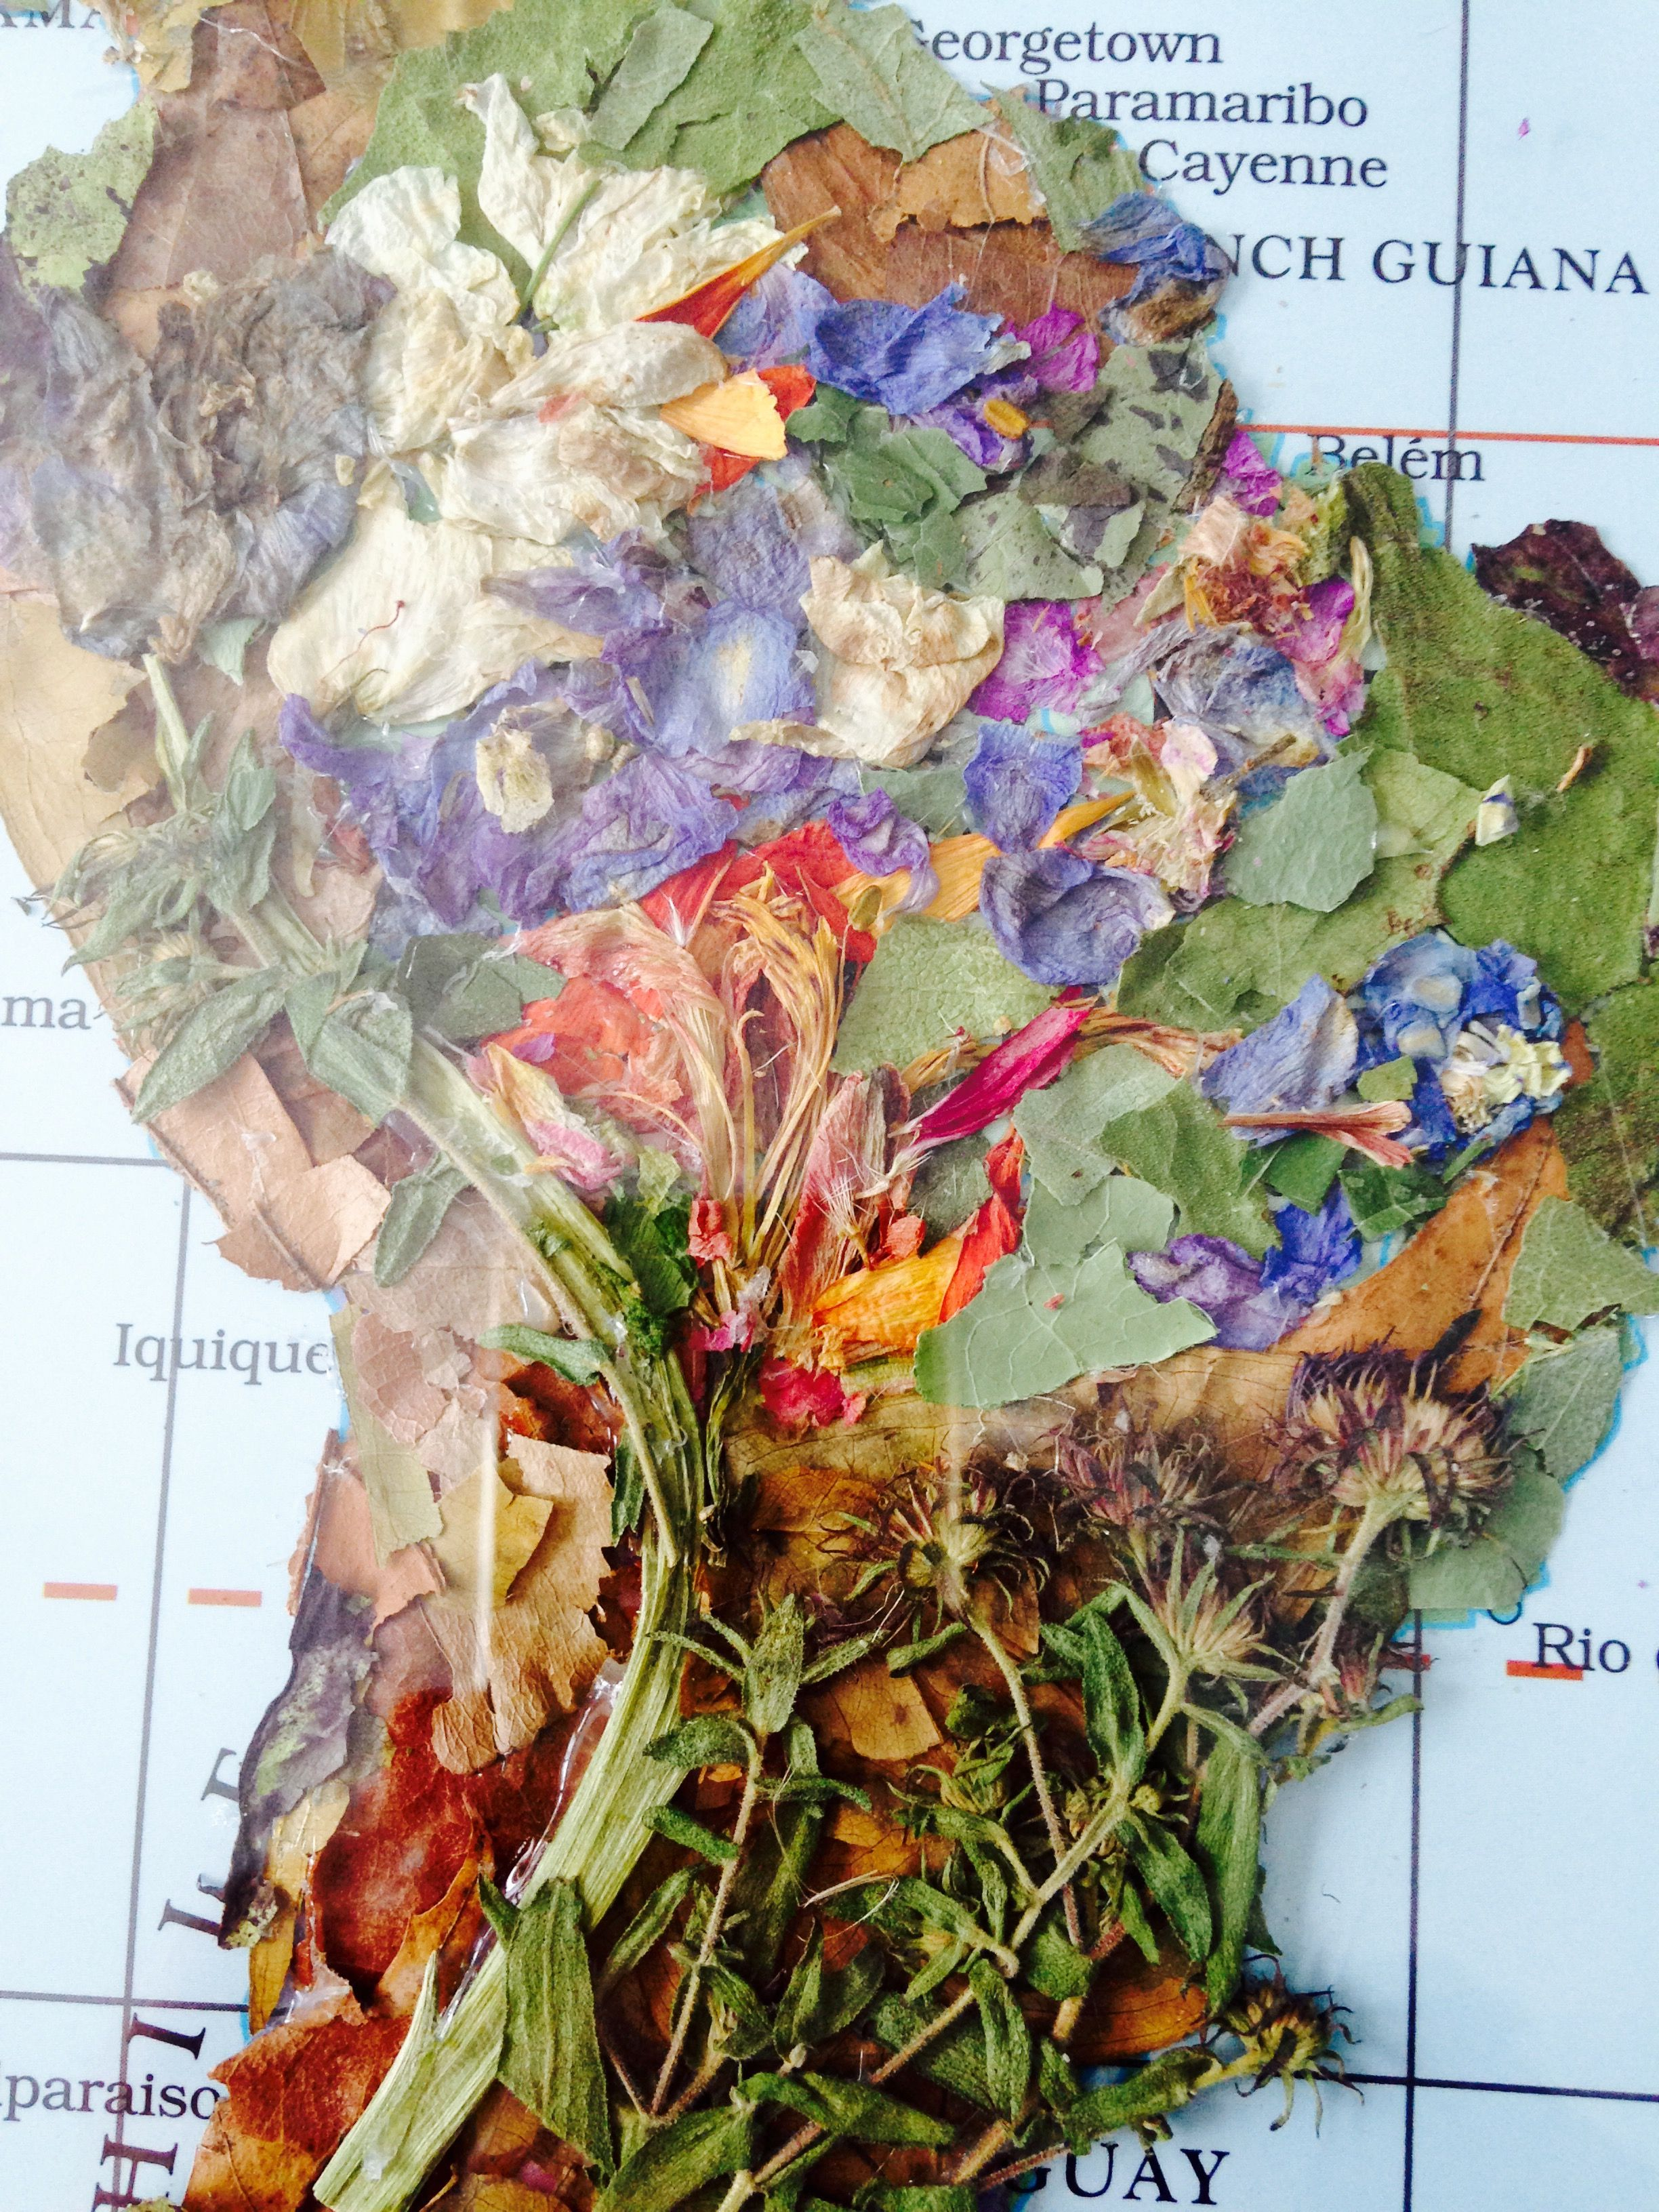 I am breathing life back into maps. A geographic map shows